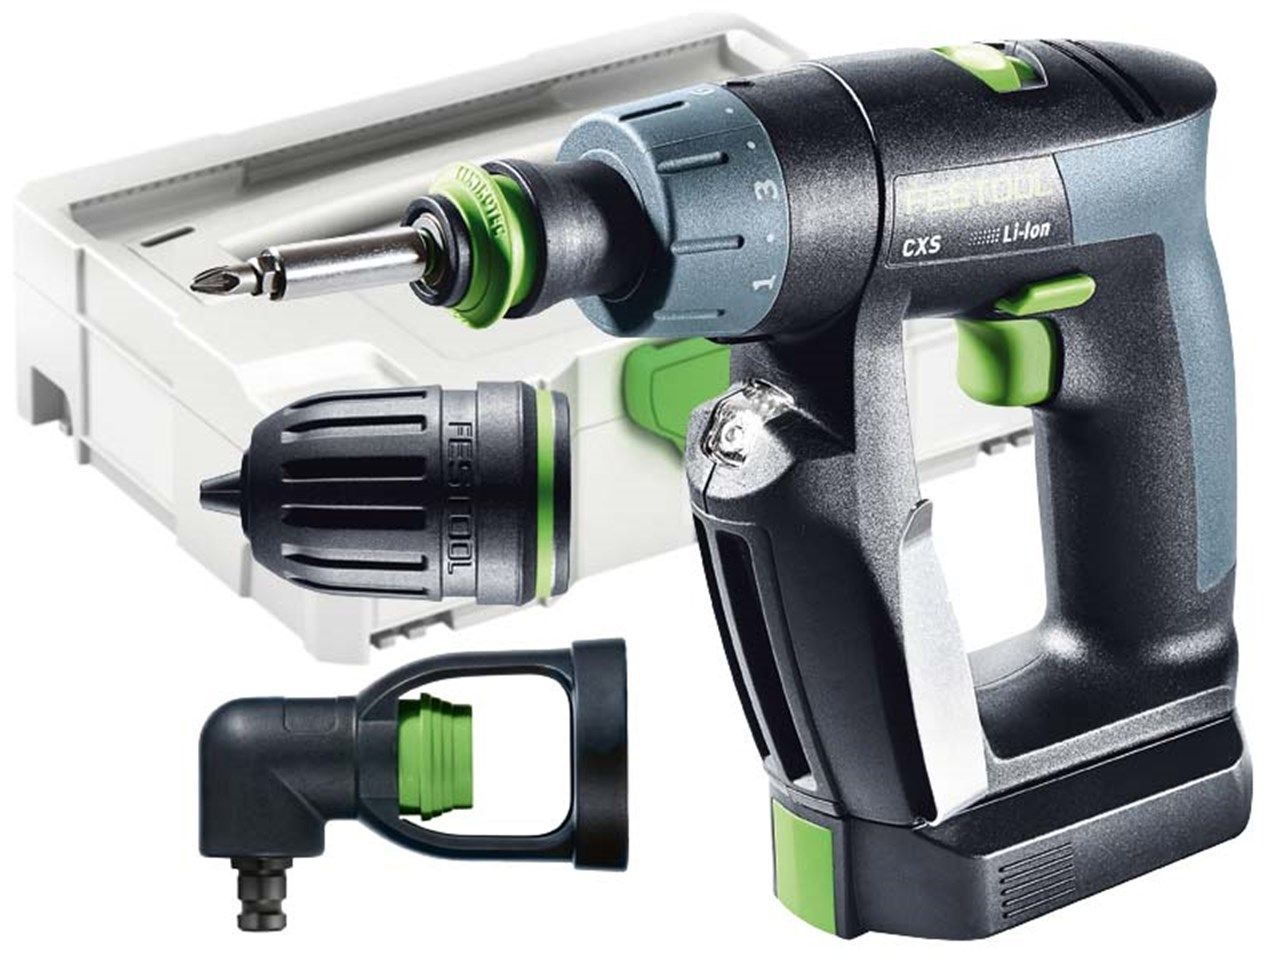 festool cxs li 2 6 set cordless drill 2 x 2 6ah in systainer. Black Bedroom Furniture Sets. Home Design Ideas